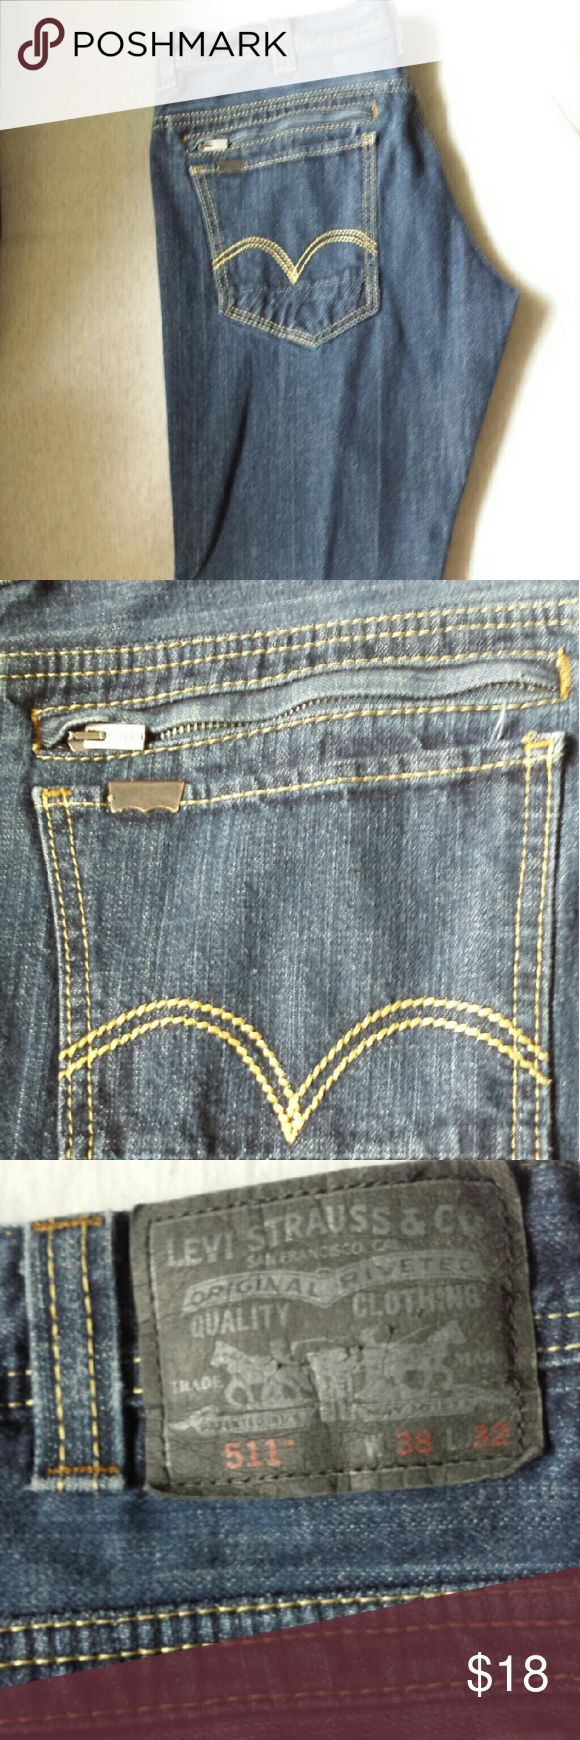 MEN'S LEVI'S 511 UNIQUE Zipper Pocket Jeans 38x32 Men's Levis Unique Rare Zippered Pocket Skinny Jeans DARK WASH SIZE 38x32 Great Preowned Condition  Ask me questions if needed Jeans Skinny